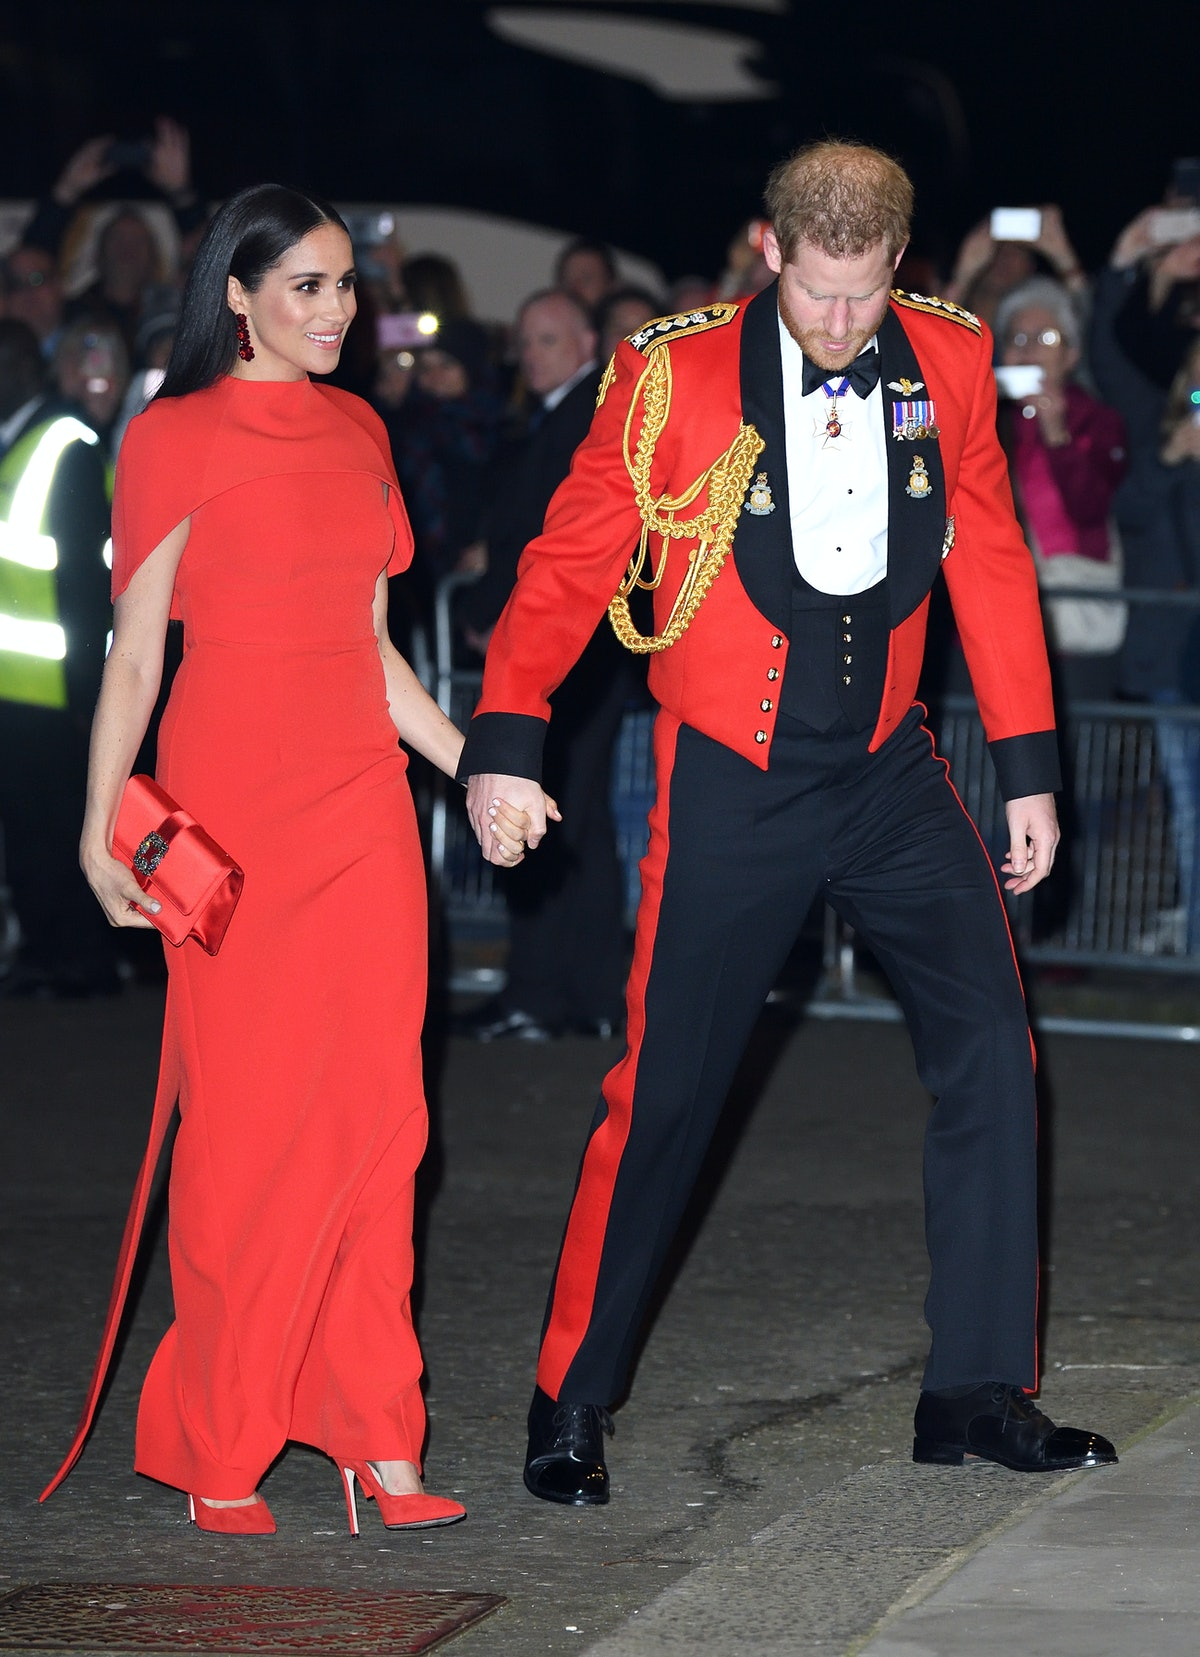 Meghan Markle wore a red dress for the Mountbatten Festival of Music in April 2020.